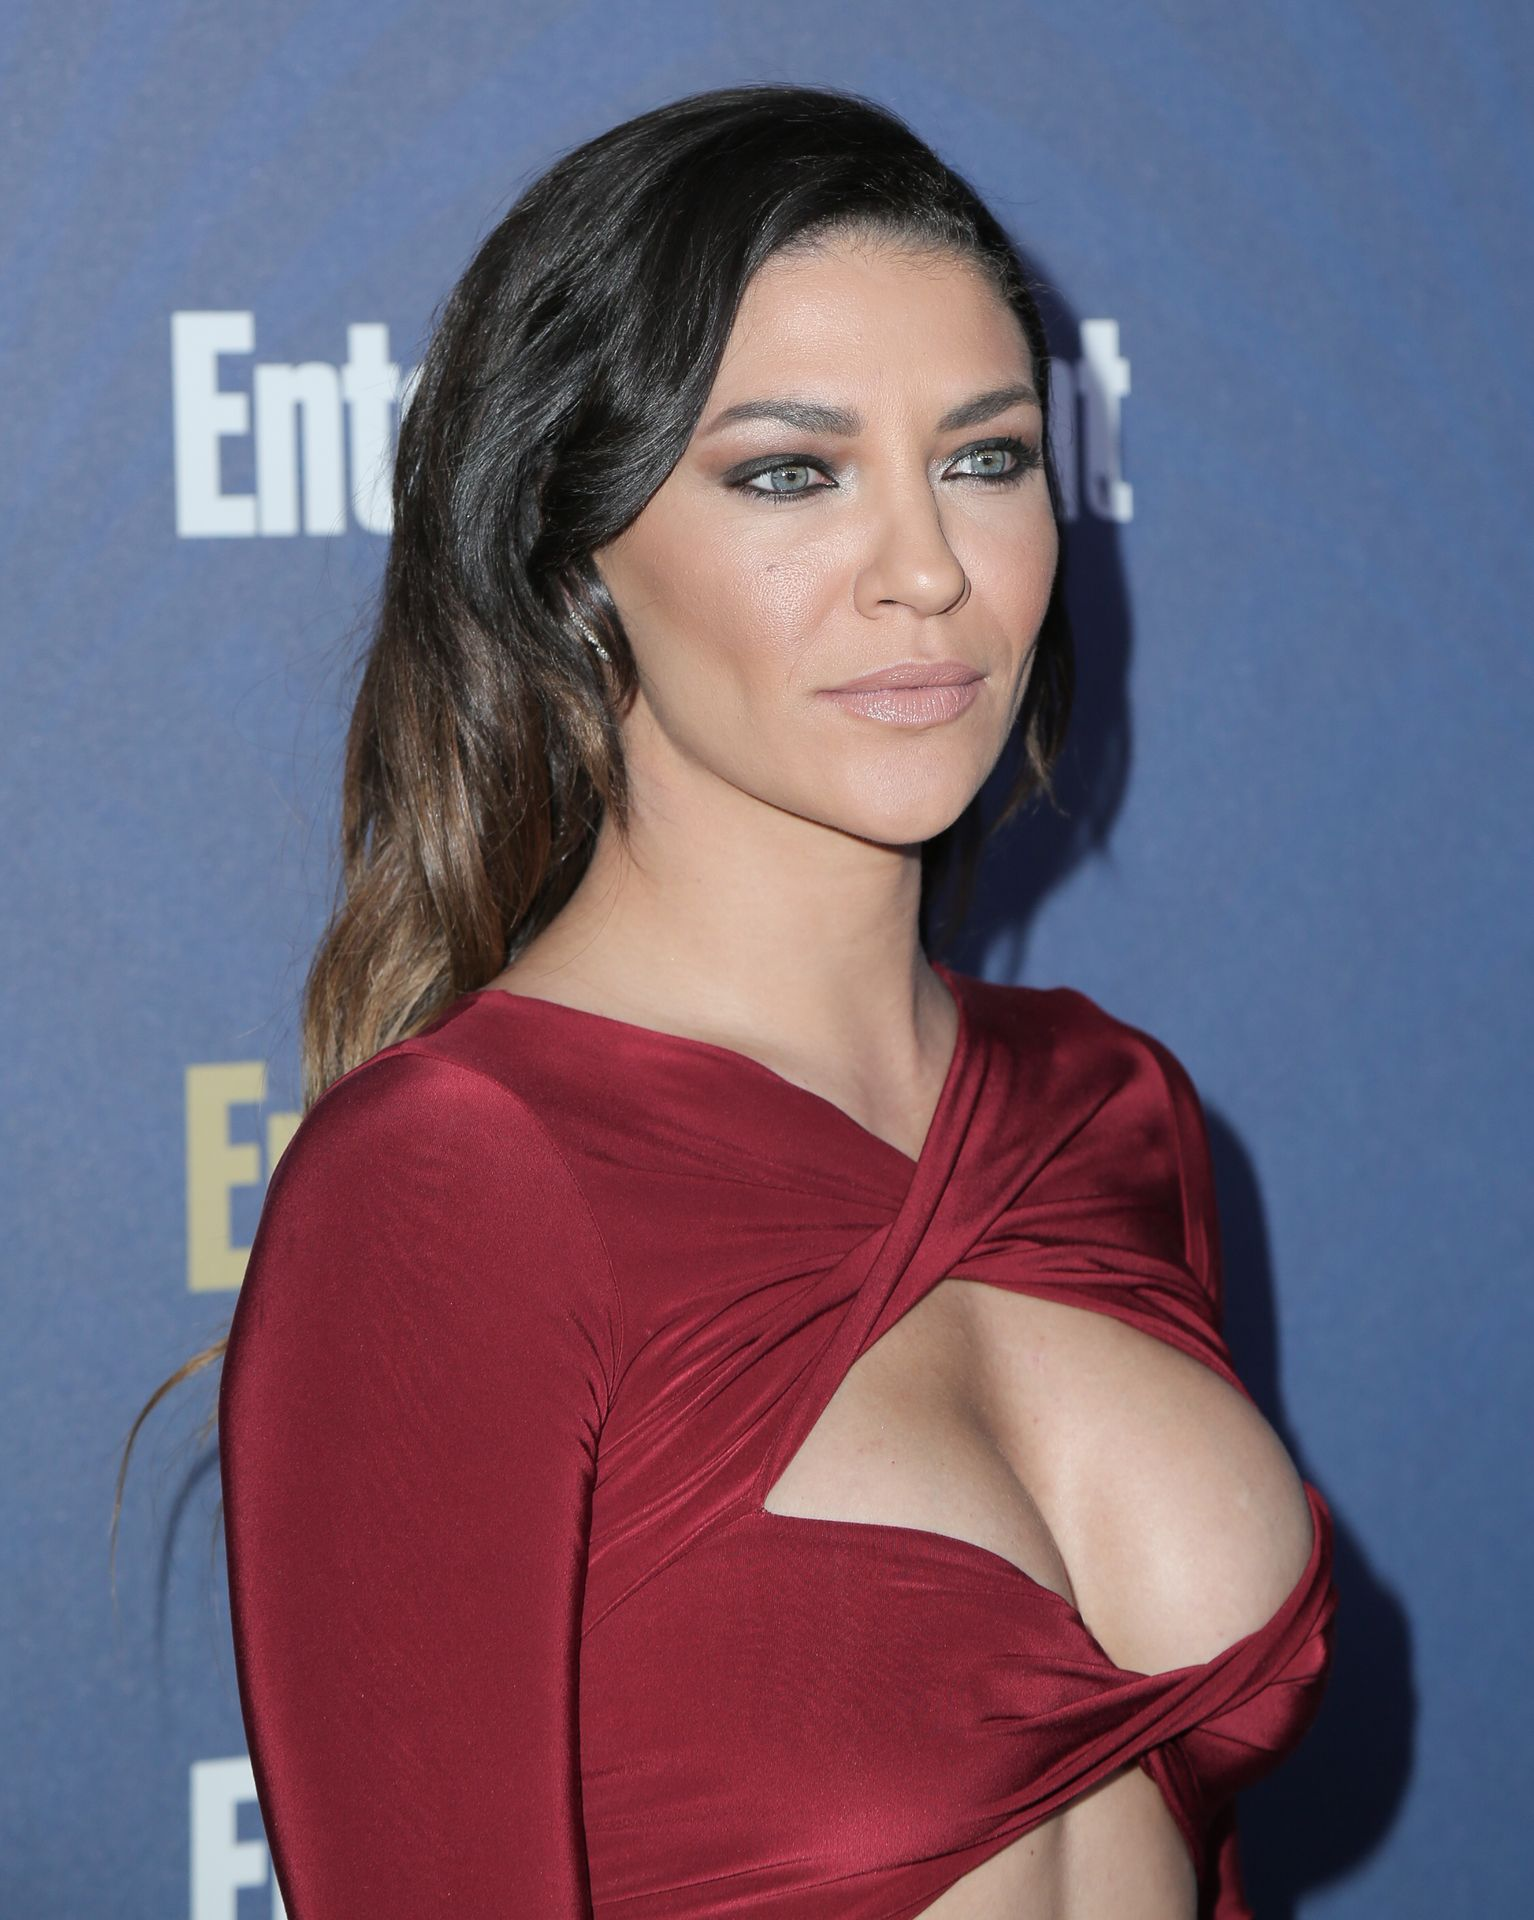 Jessica Szohr Shows Her Cleavage At The Entertainment Weekly Pre Sag Awards Celebration 0021